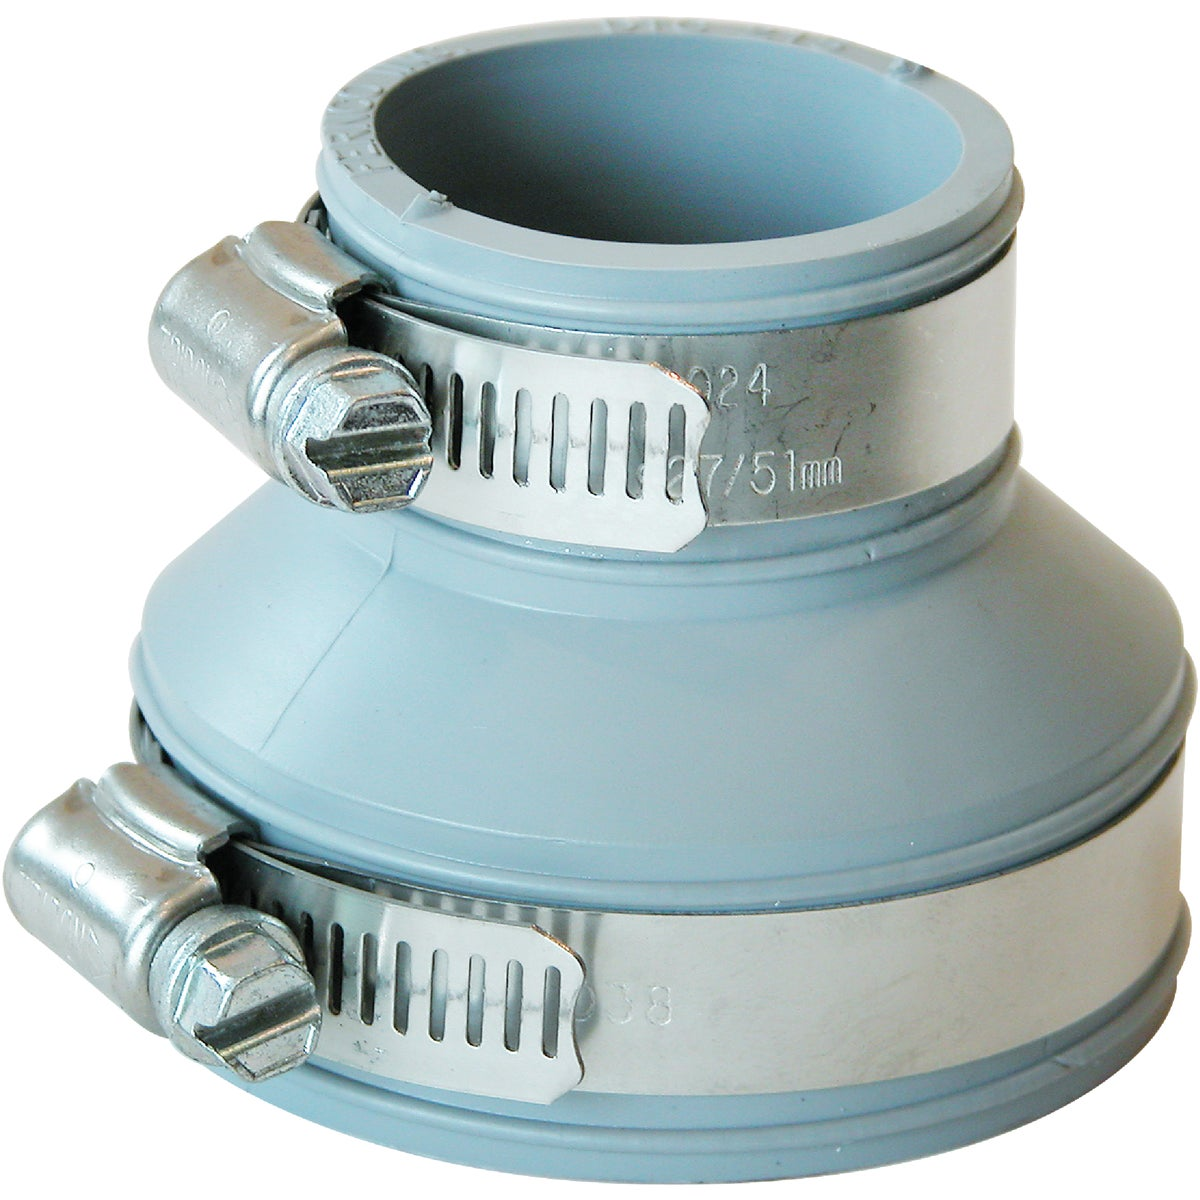 FLEXIBLE DRAIN CONNECTOR - PDTC-215 by Fernco Inc